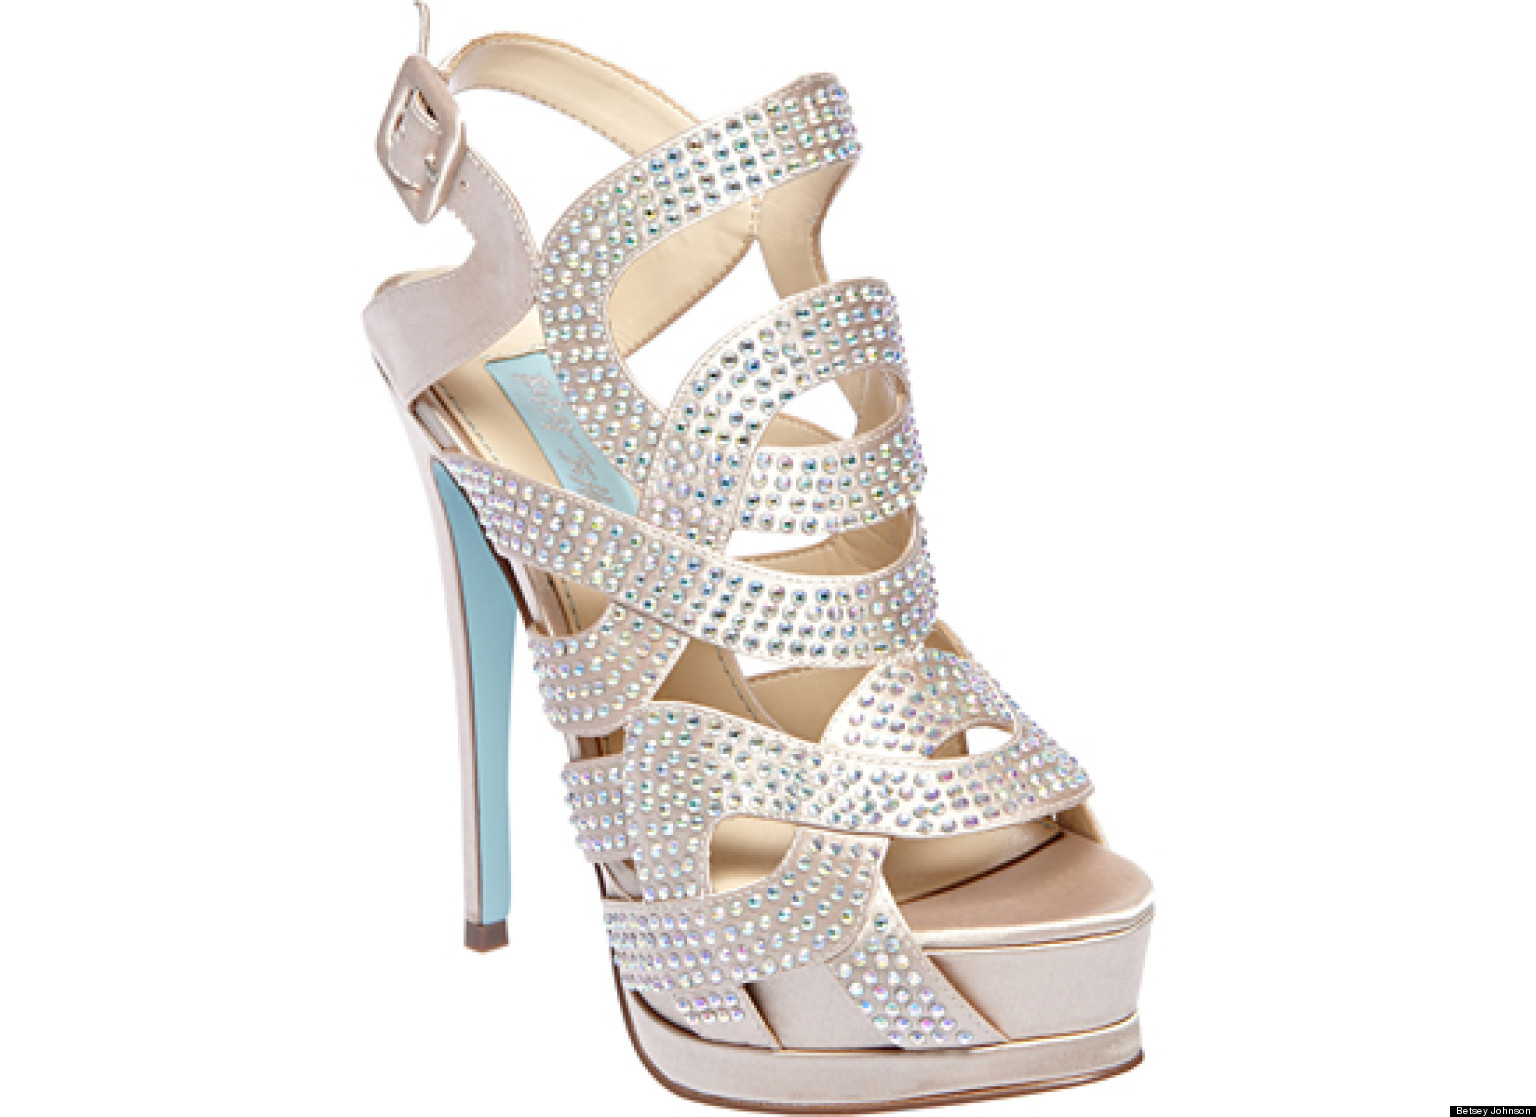 Betsey Johnson's Bridal Shoe Collection To Debut On Zappos